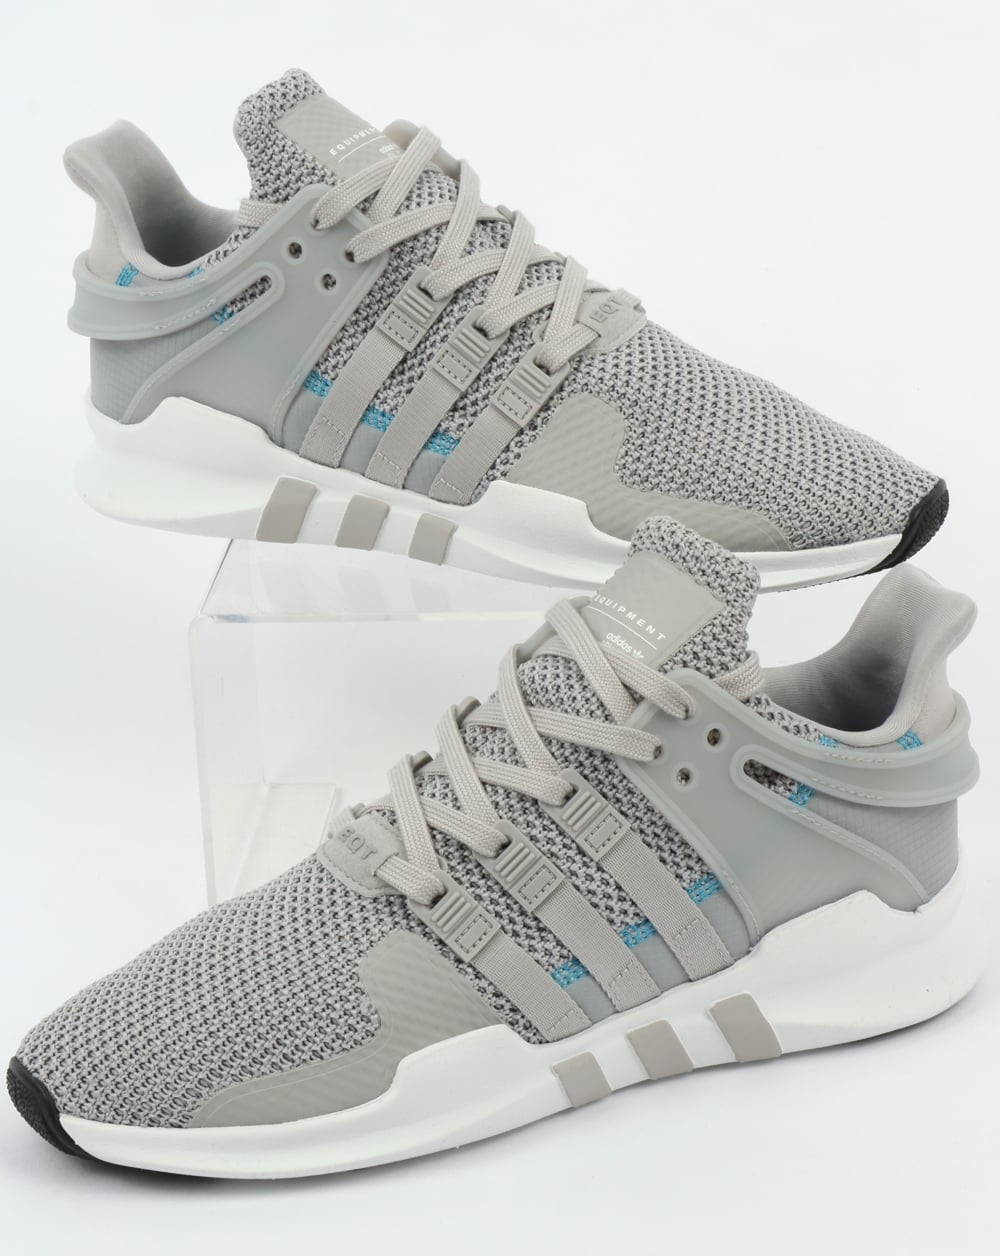 80abf967c47f adidas Trainers Adidas EQT Support ADV Trainers Grey 2 White